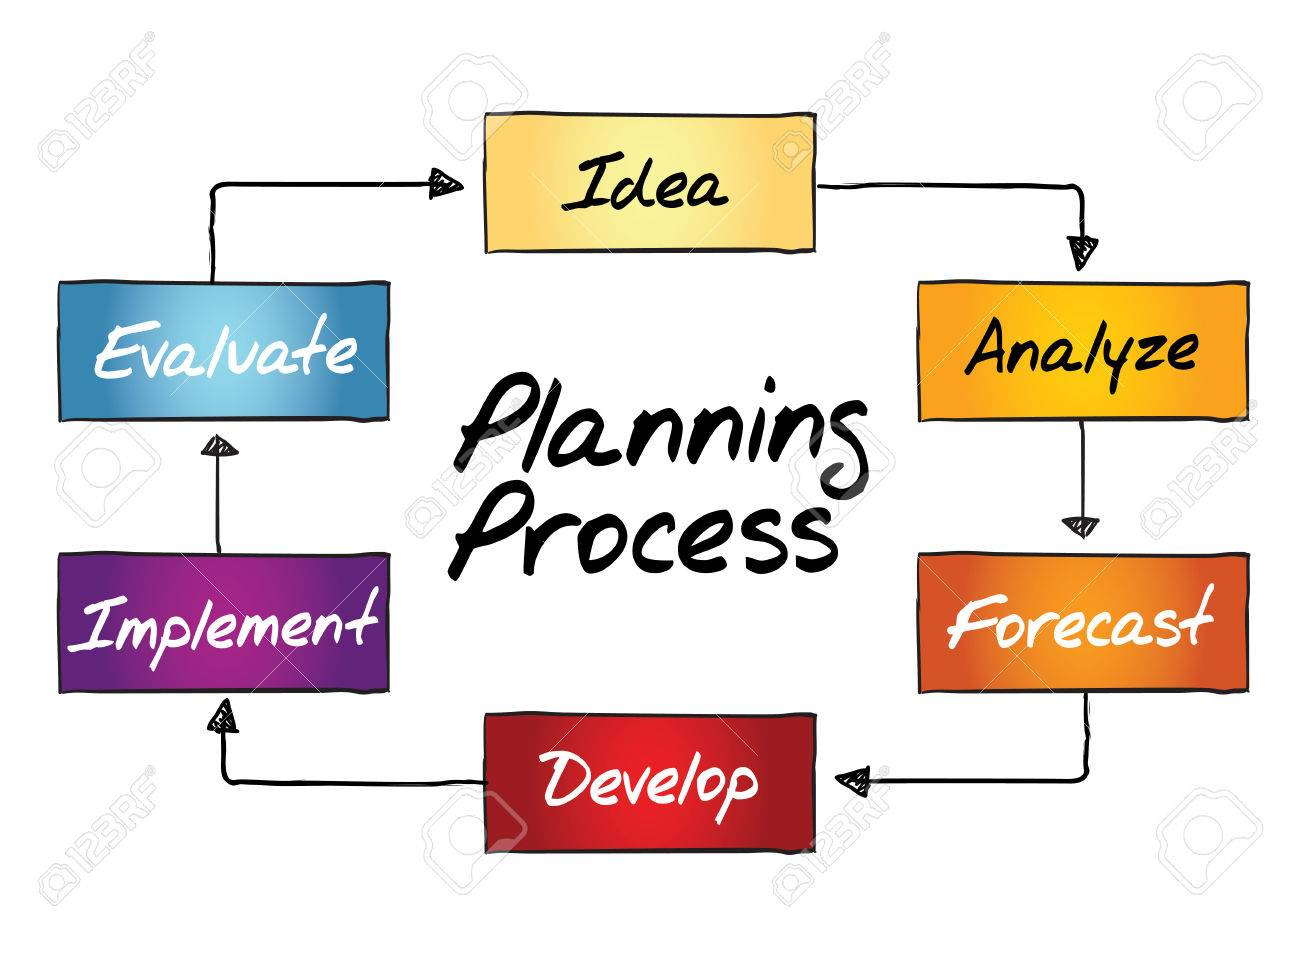 Planning Process Flow Chart Business Concept Royalty Free Cliparts Diagram Pictures Stock Vector 37220628